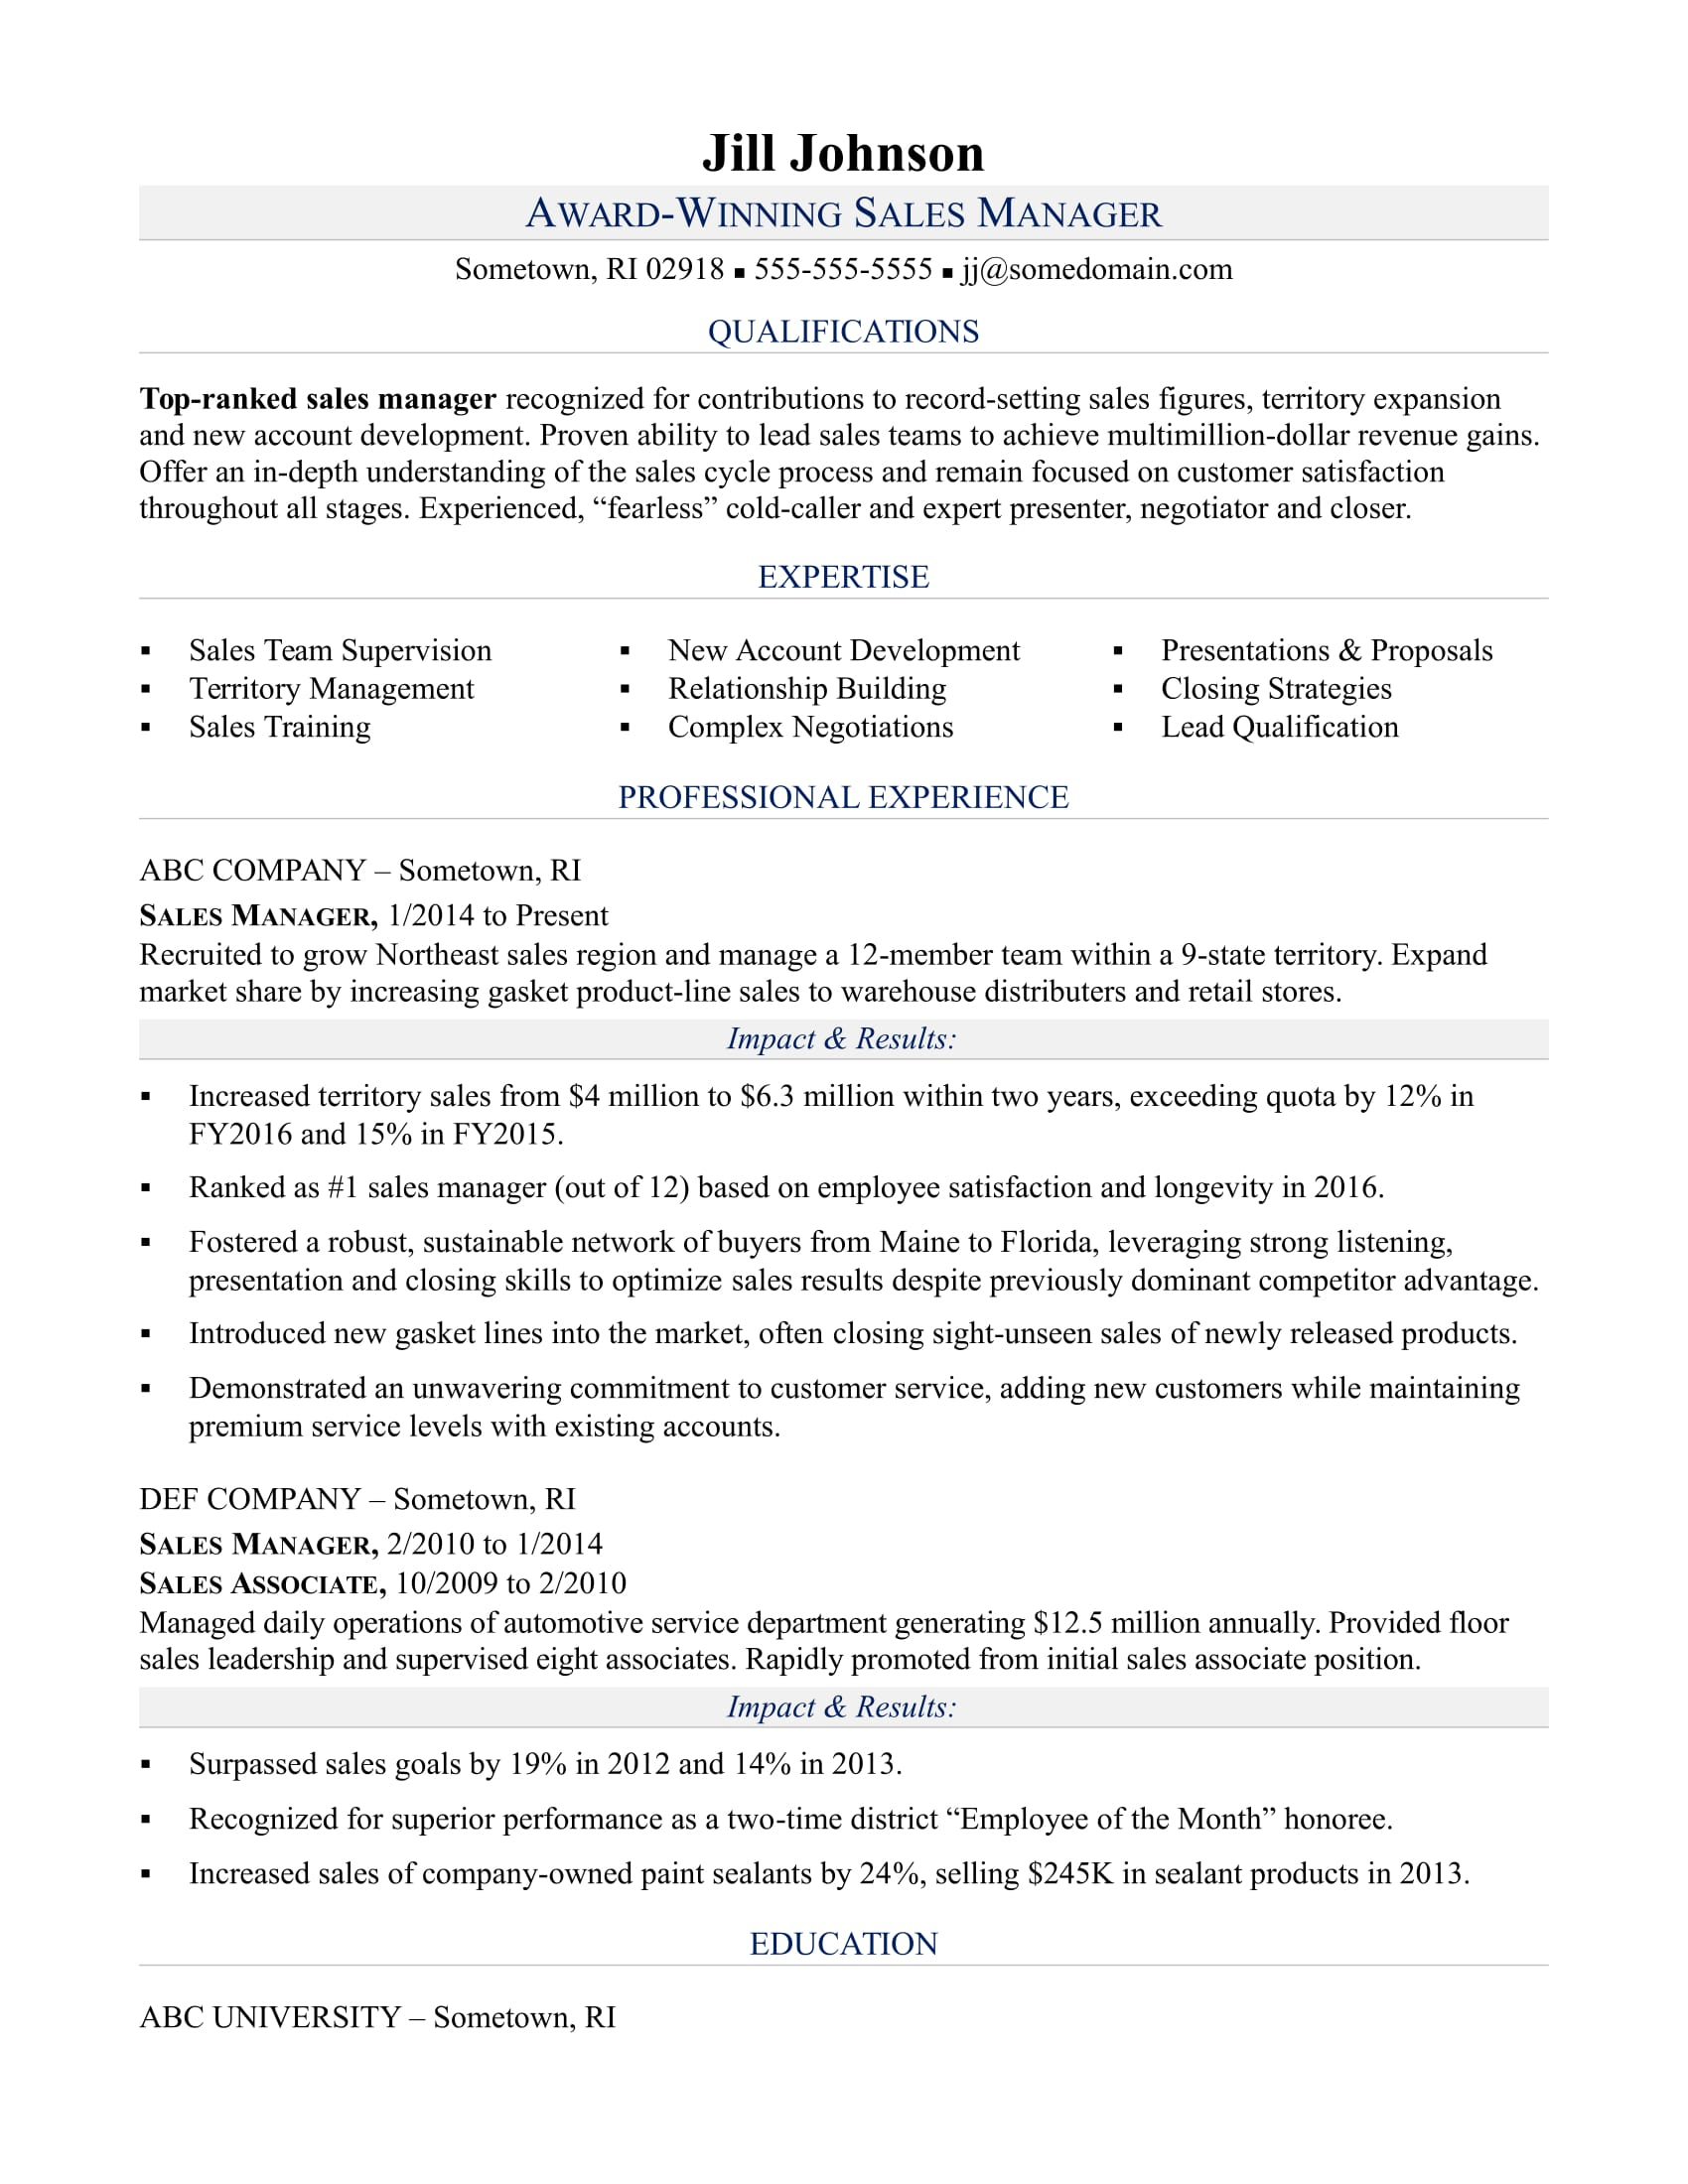 sample resume for a sales manager - Sample Resume For Manager